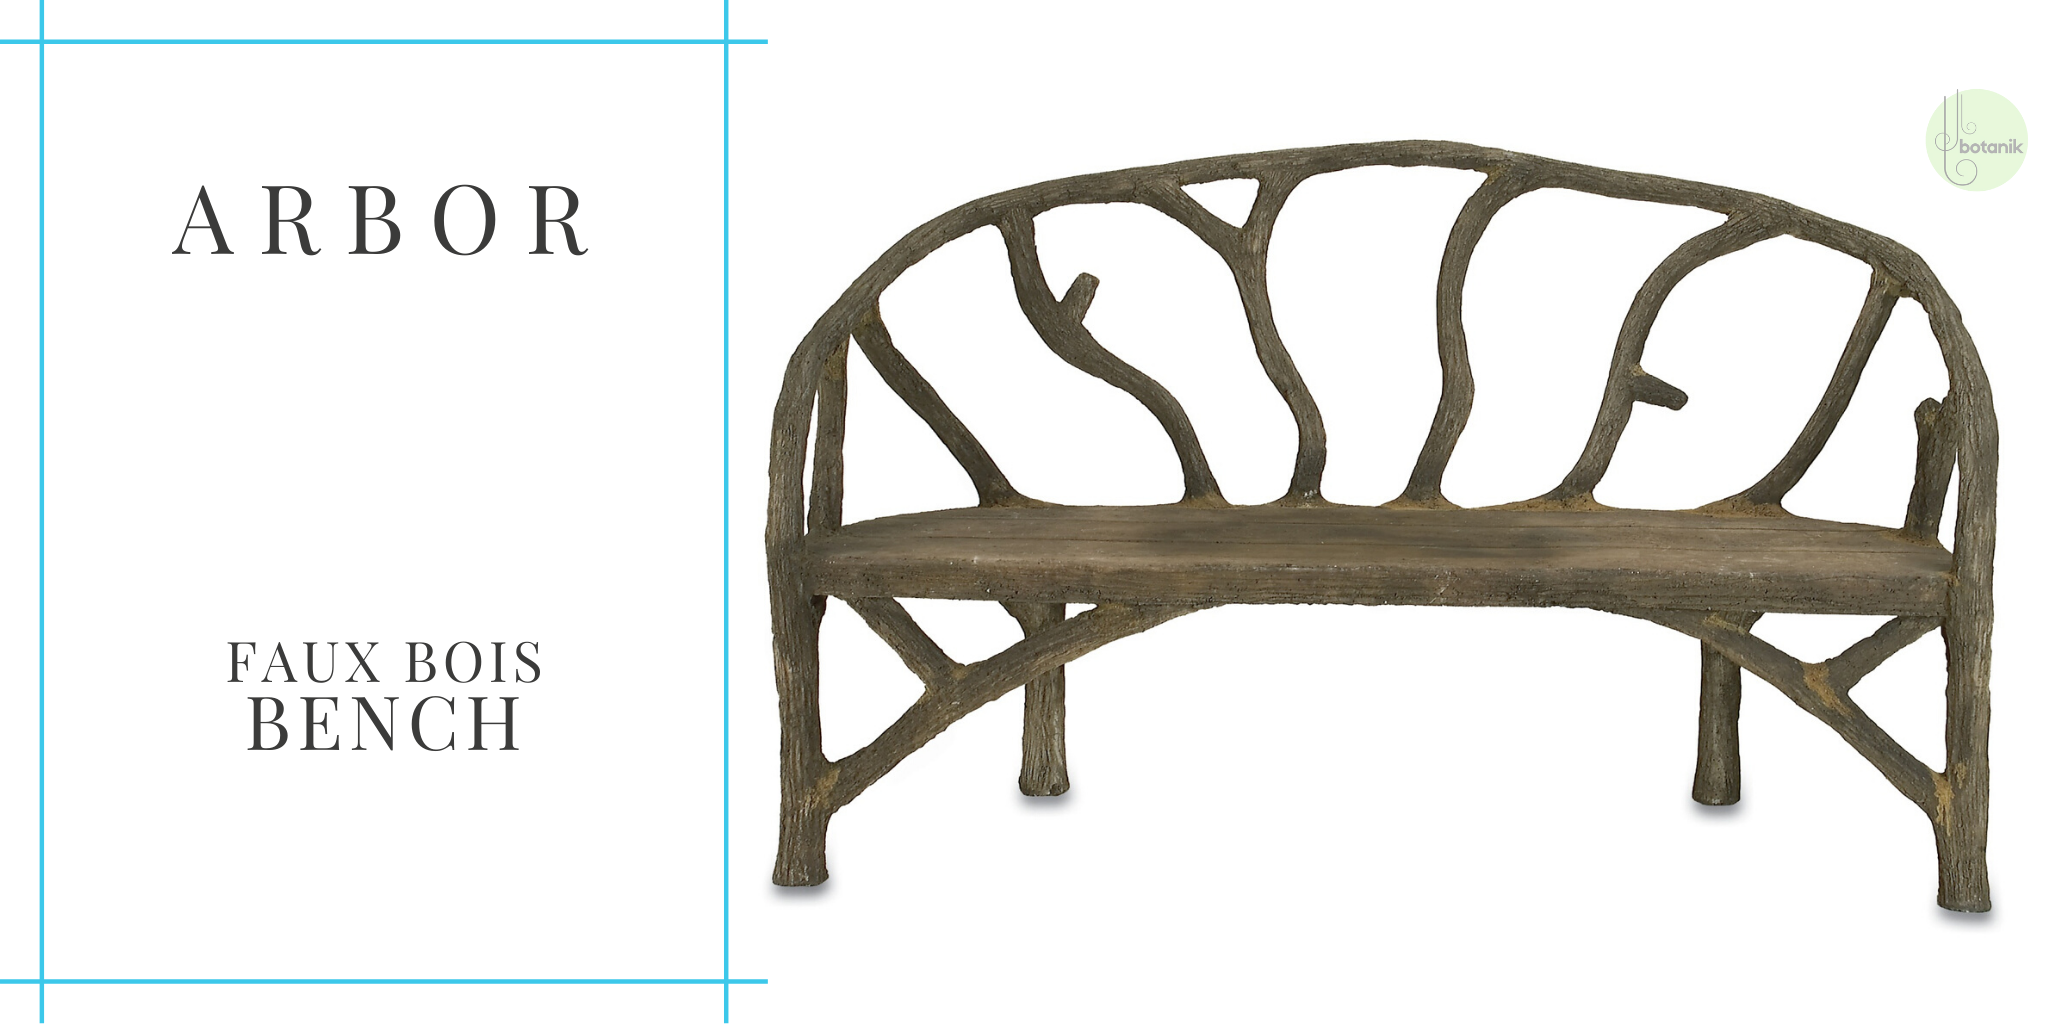 arbor-faux-bois-bench-from-currey